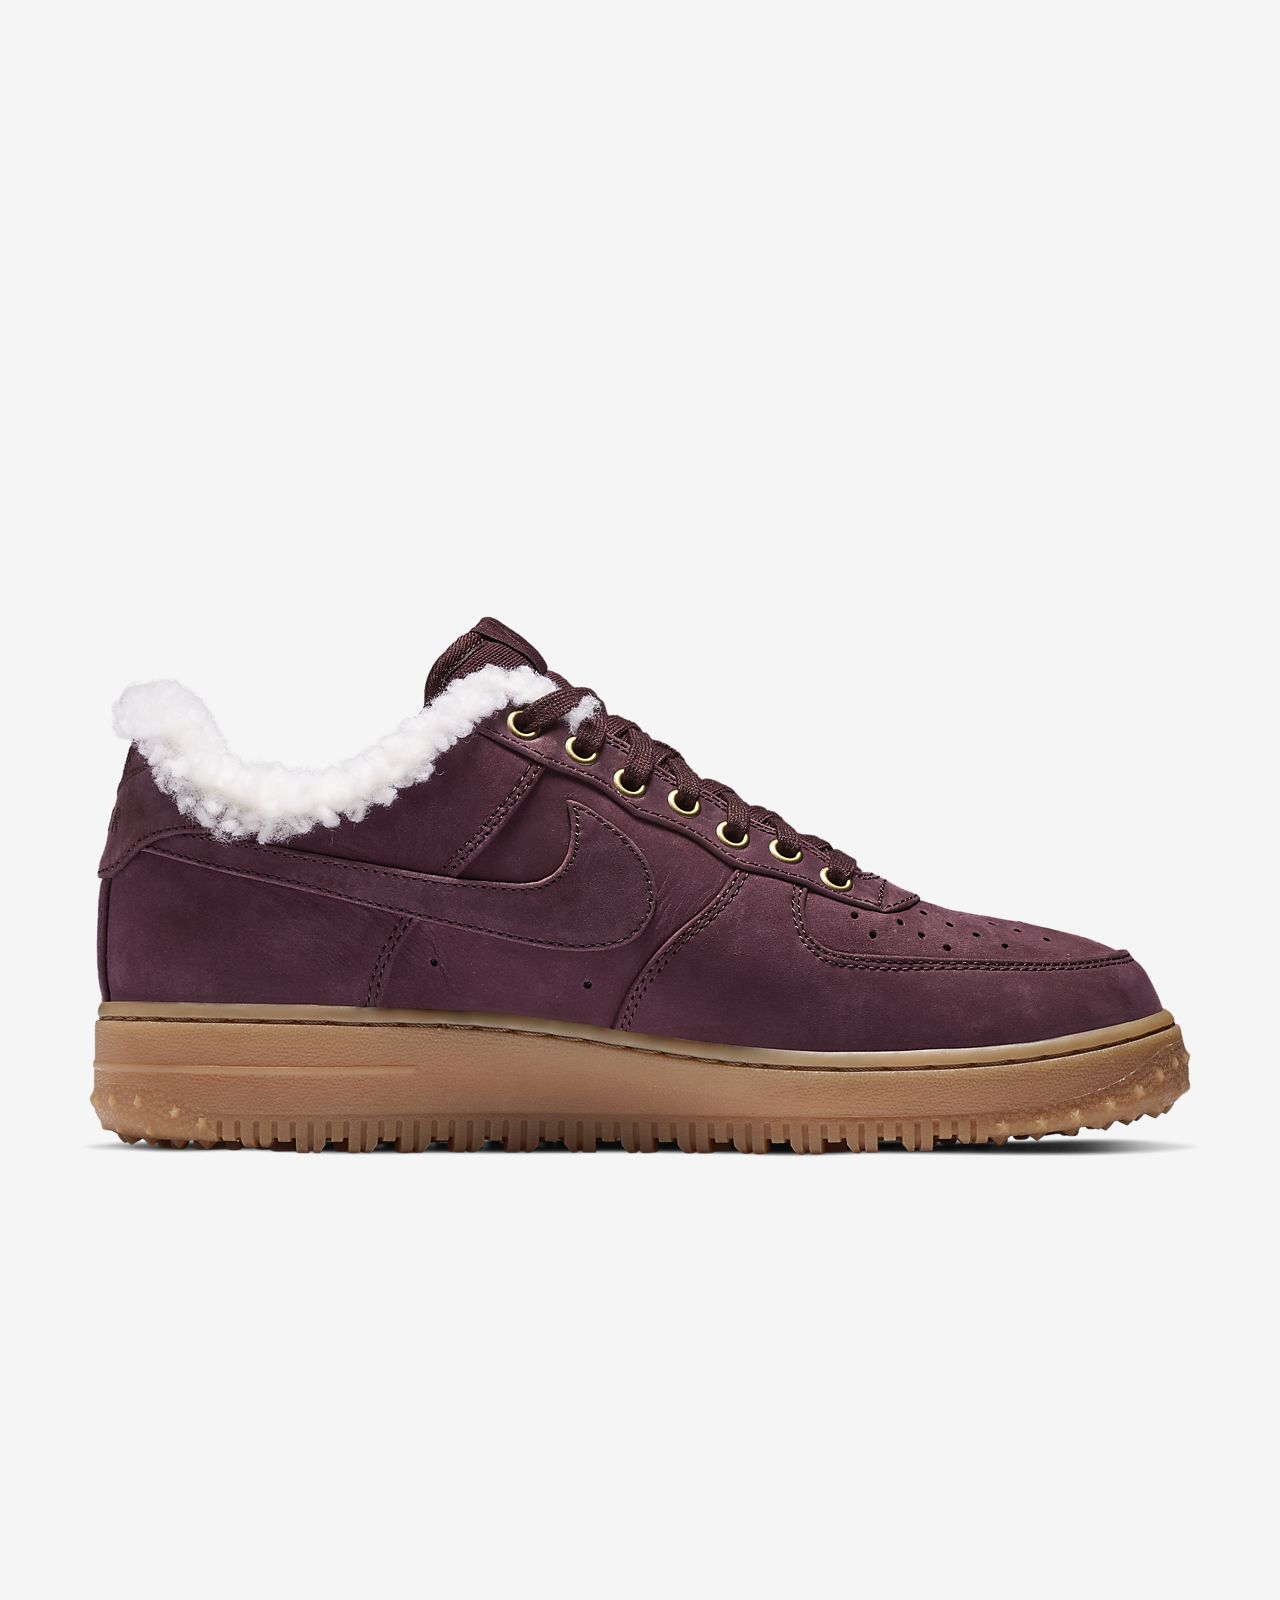 new product 468de 4893f ... Chaussure Nike Air Force 1 Premium Winter pour Homme